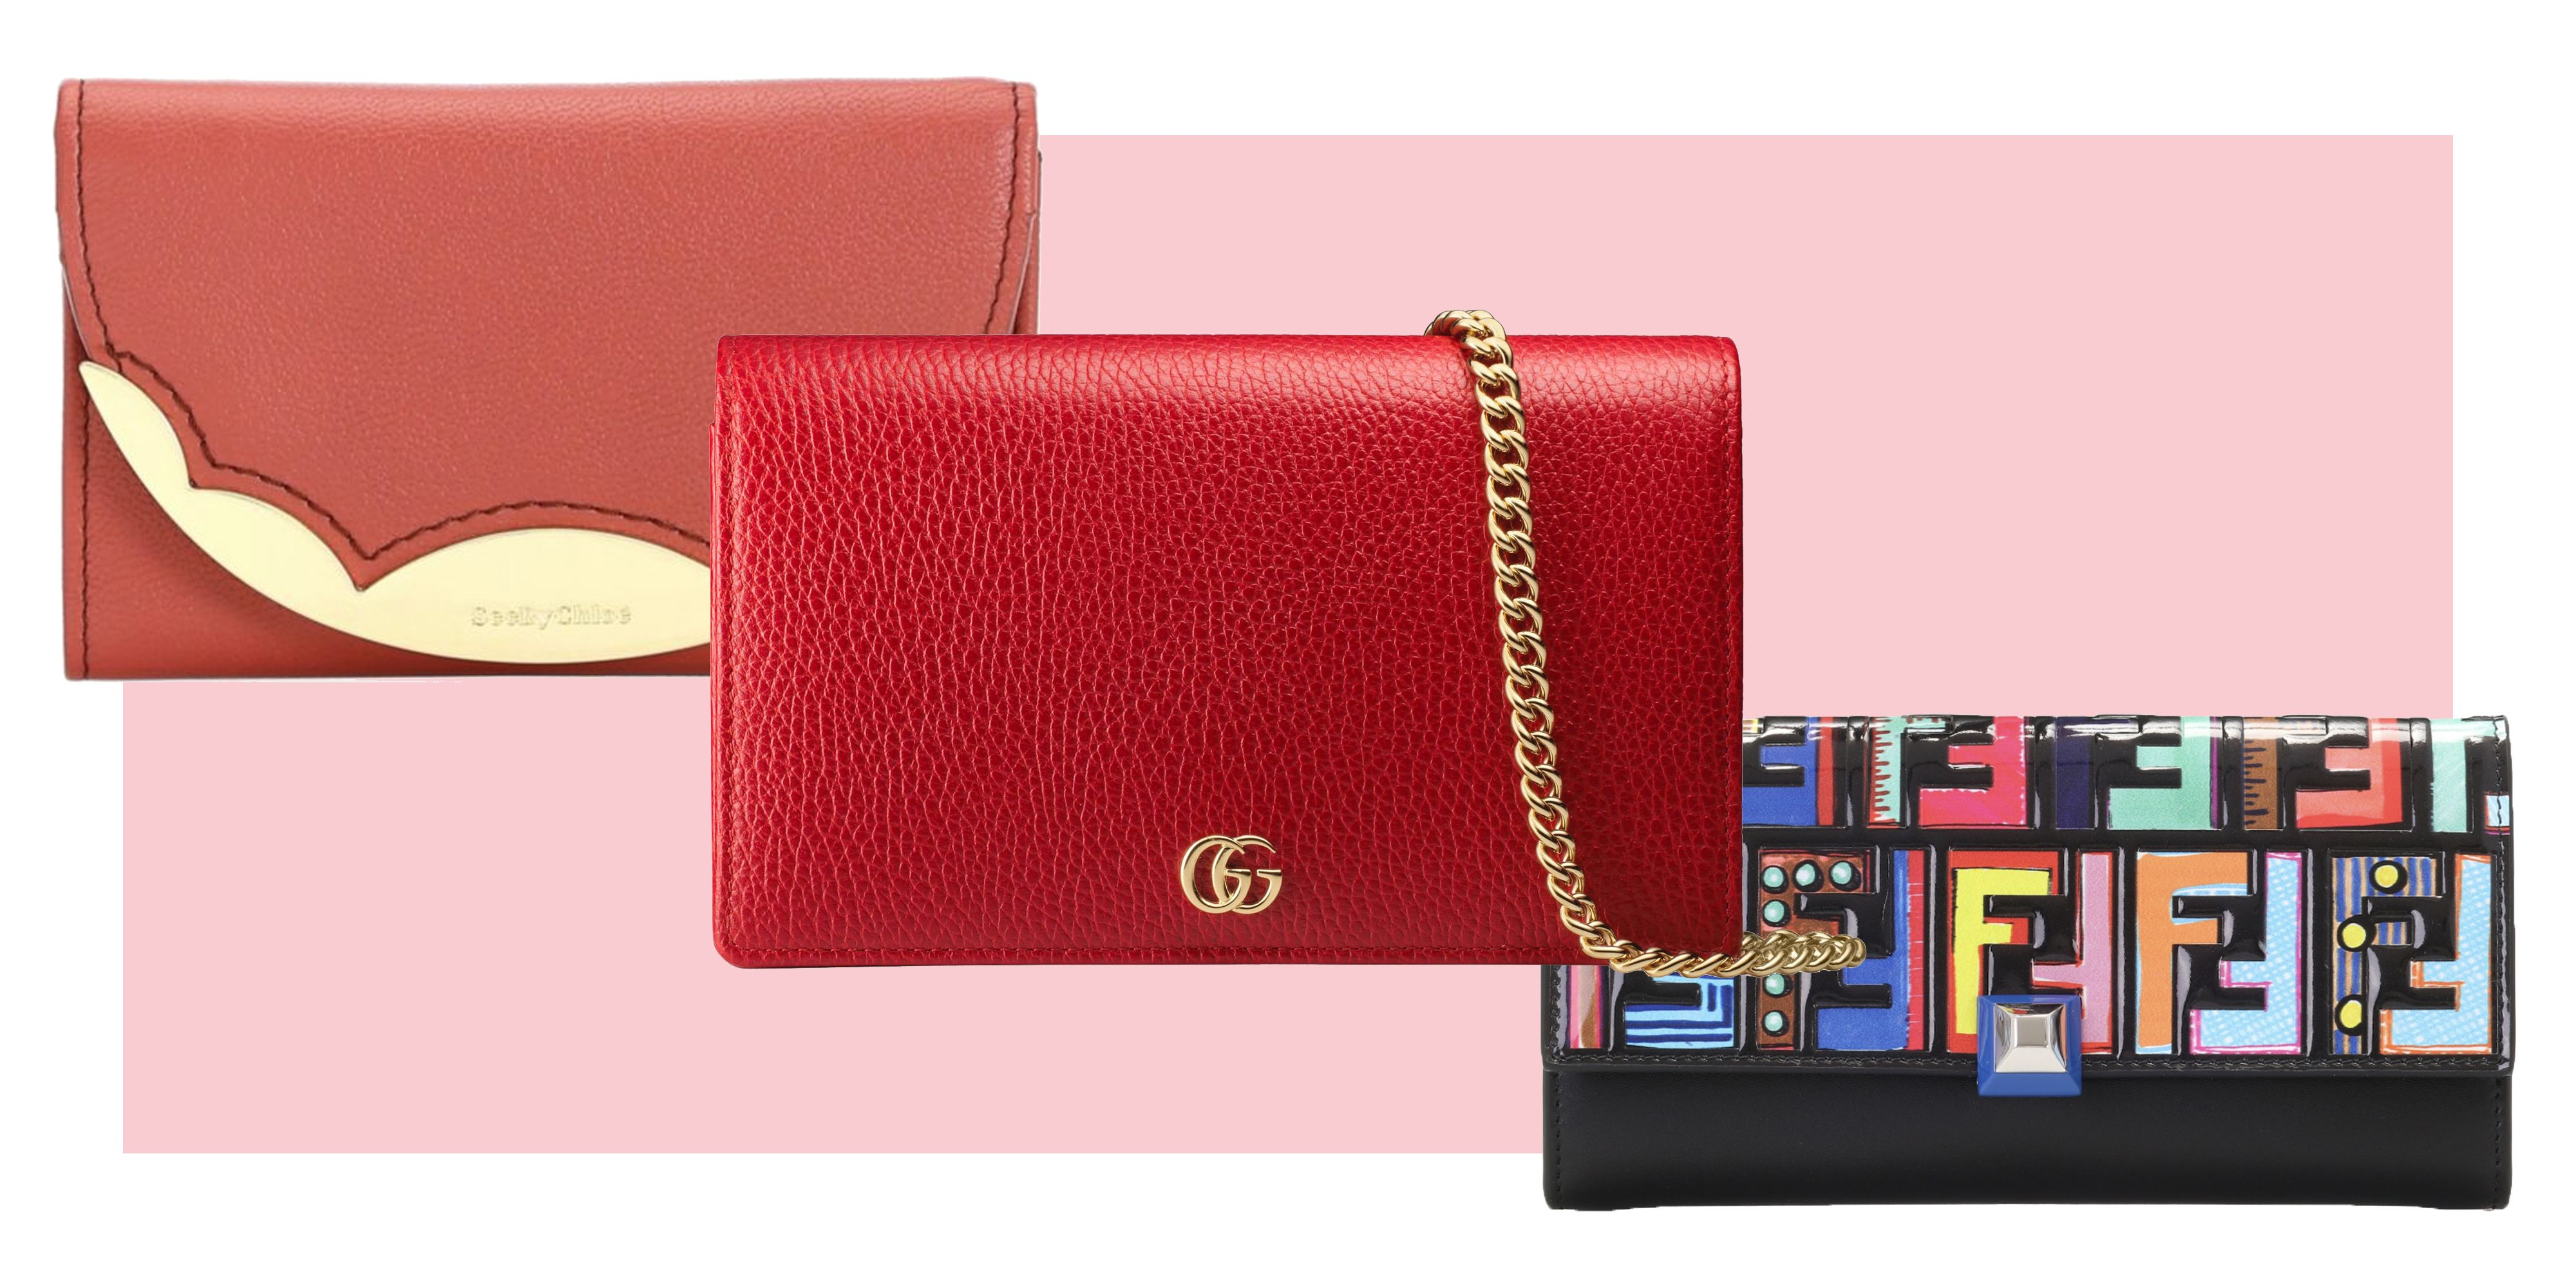 a22e576f529 The 10 Best Wallets for Women, From Teeny Card Cases to Fat Clutch Styles